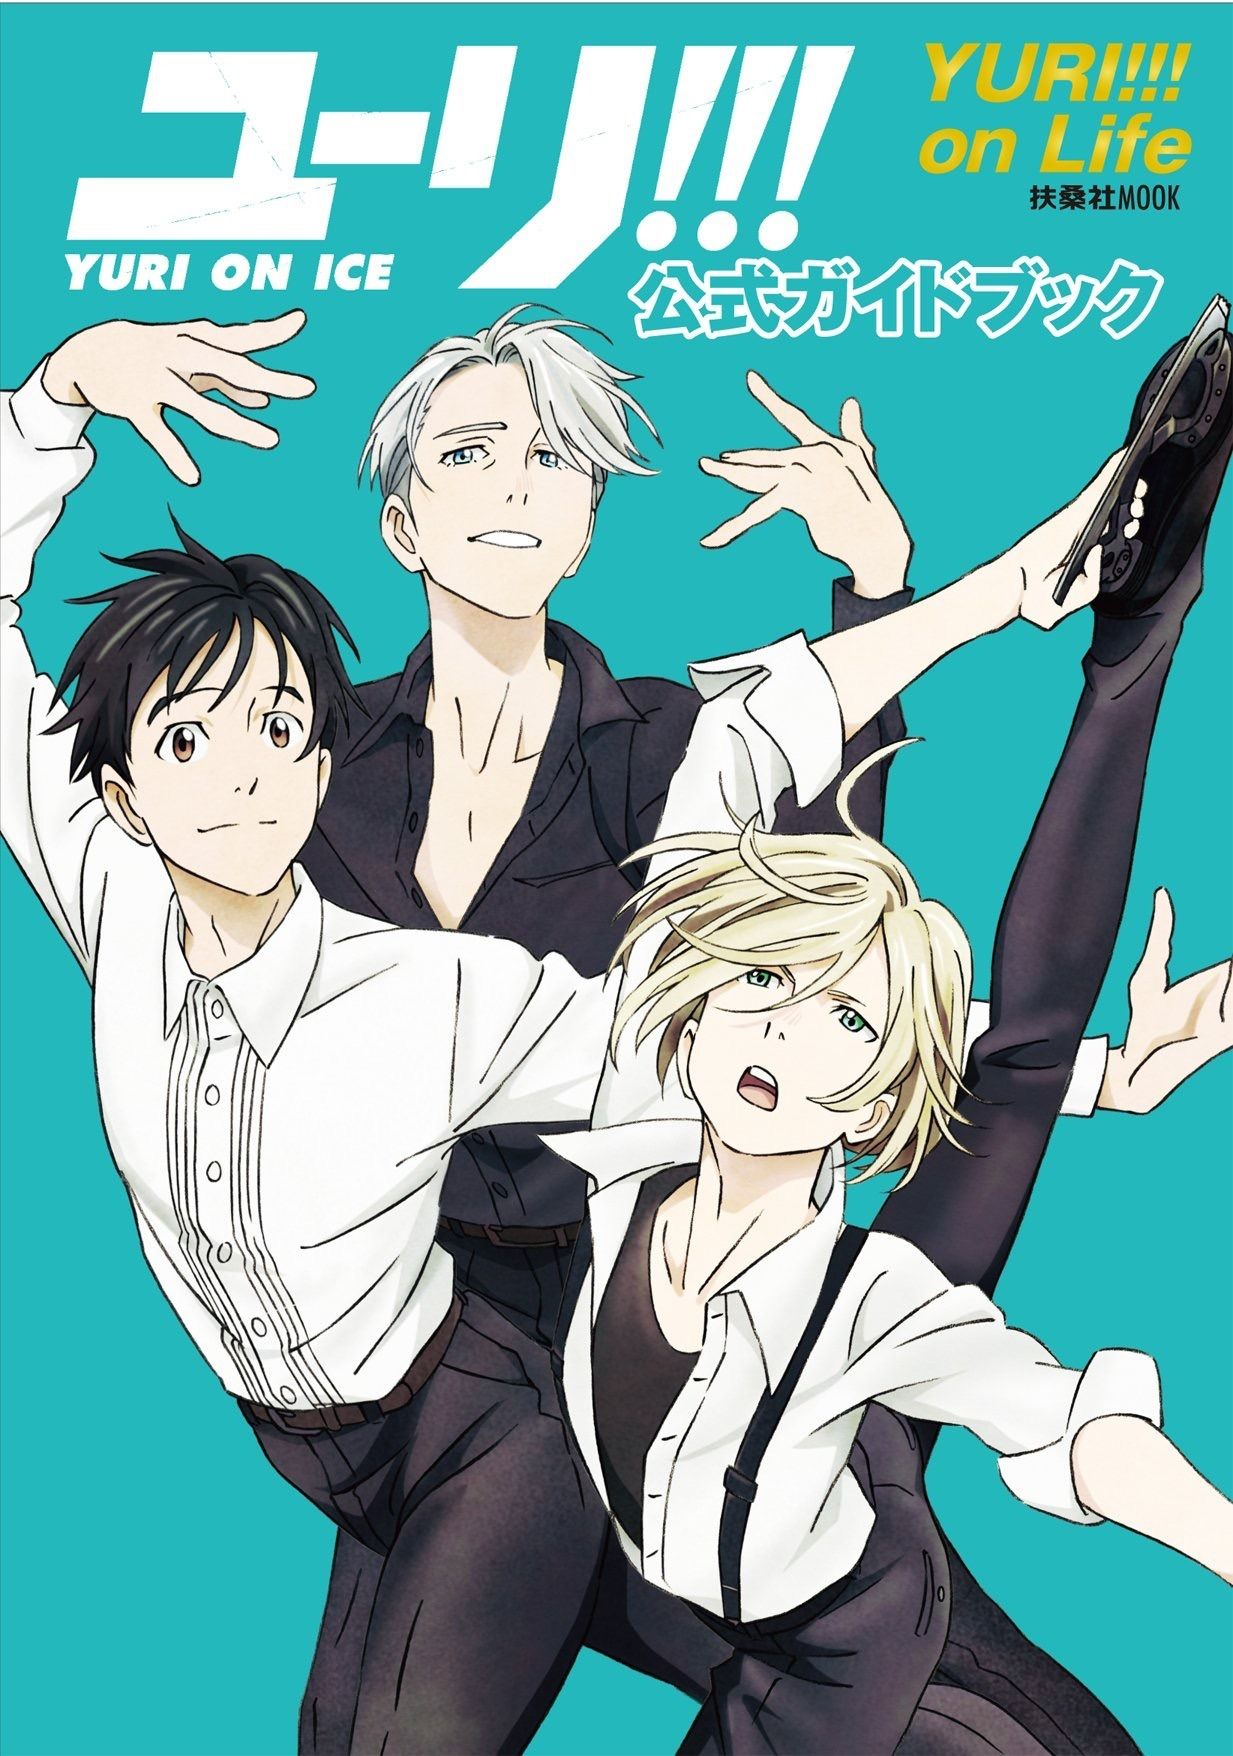 Pin by Leigh on Yuri!!! On Ice Yuri on ice, Manga covers